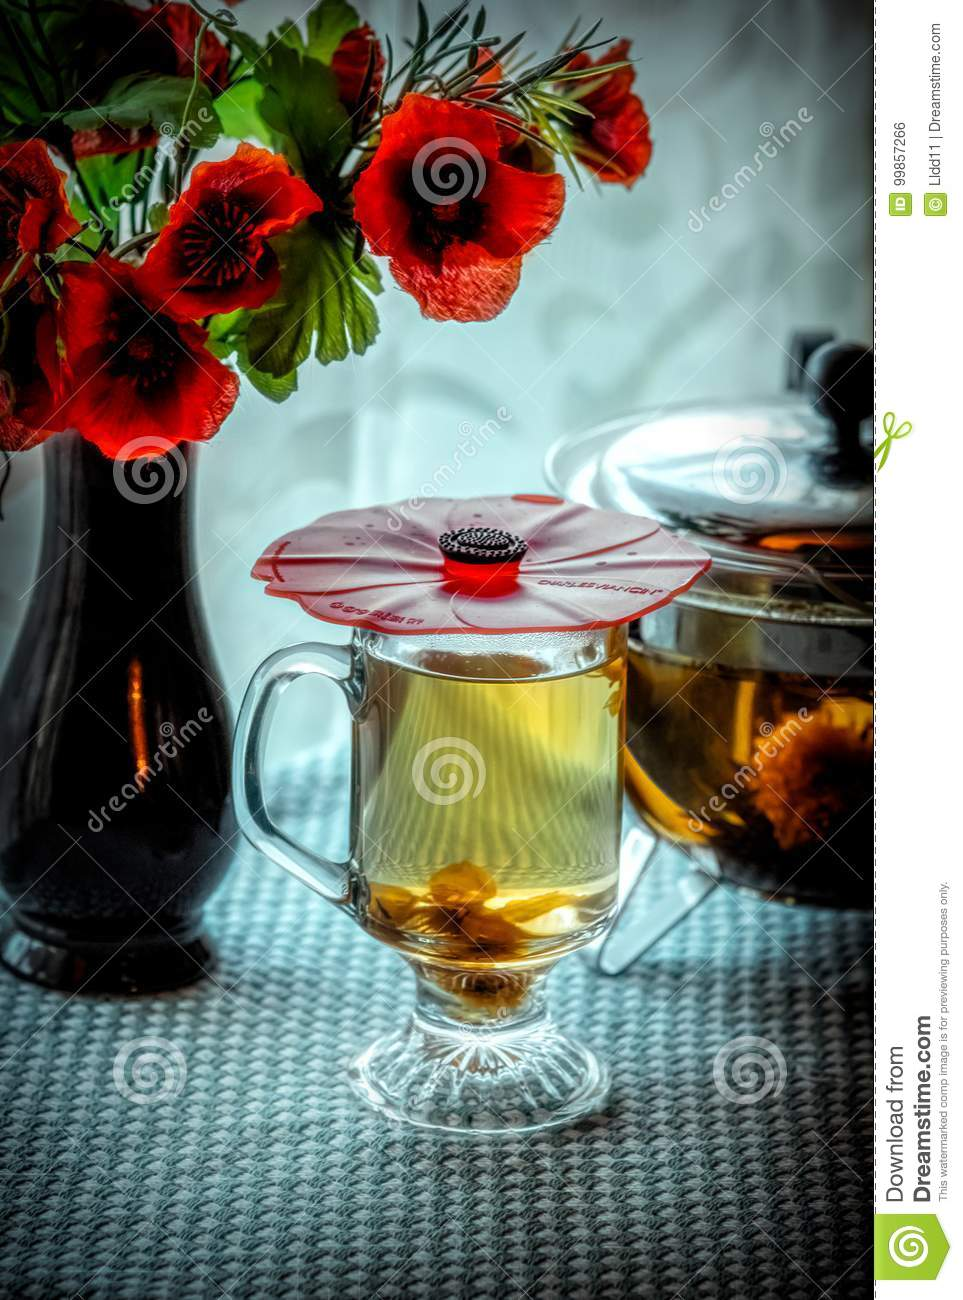 Green Tea And Poppies Stock Photo Image Of Glass Still 99857266